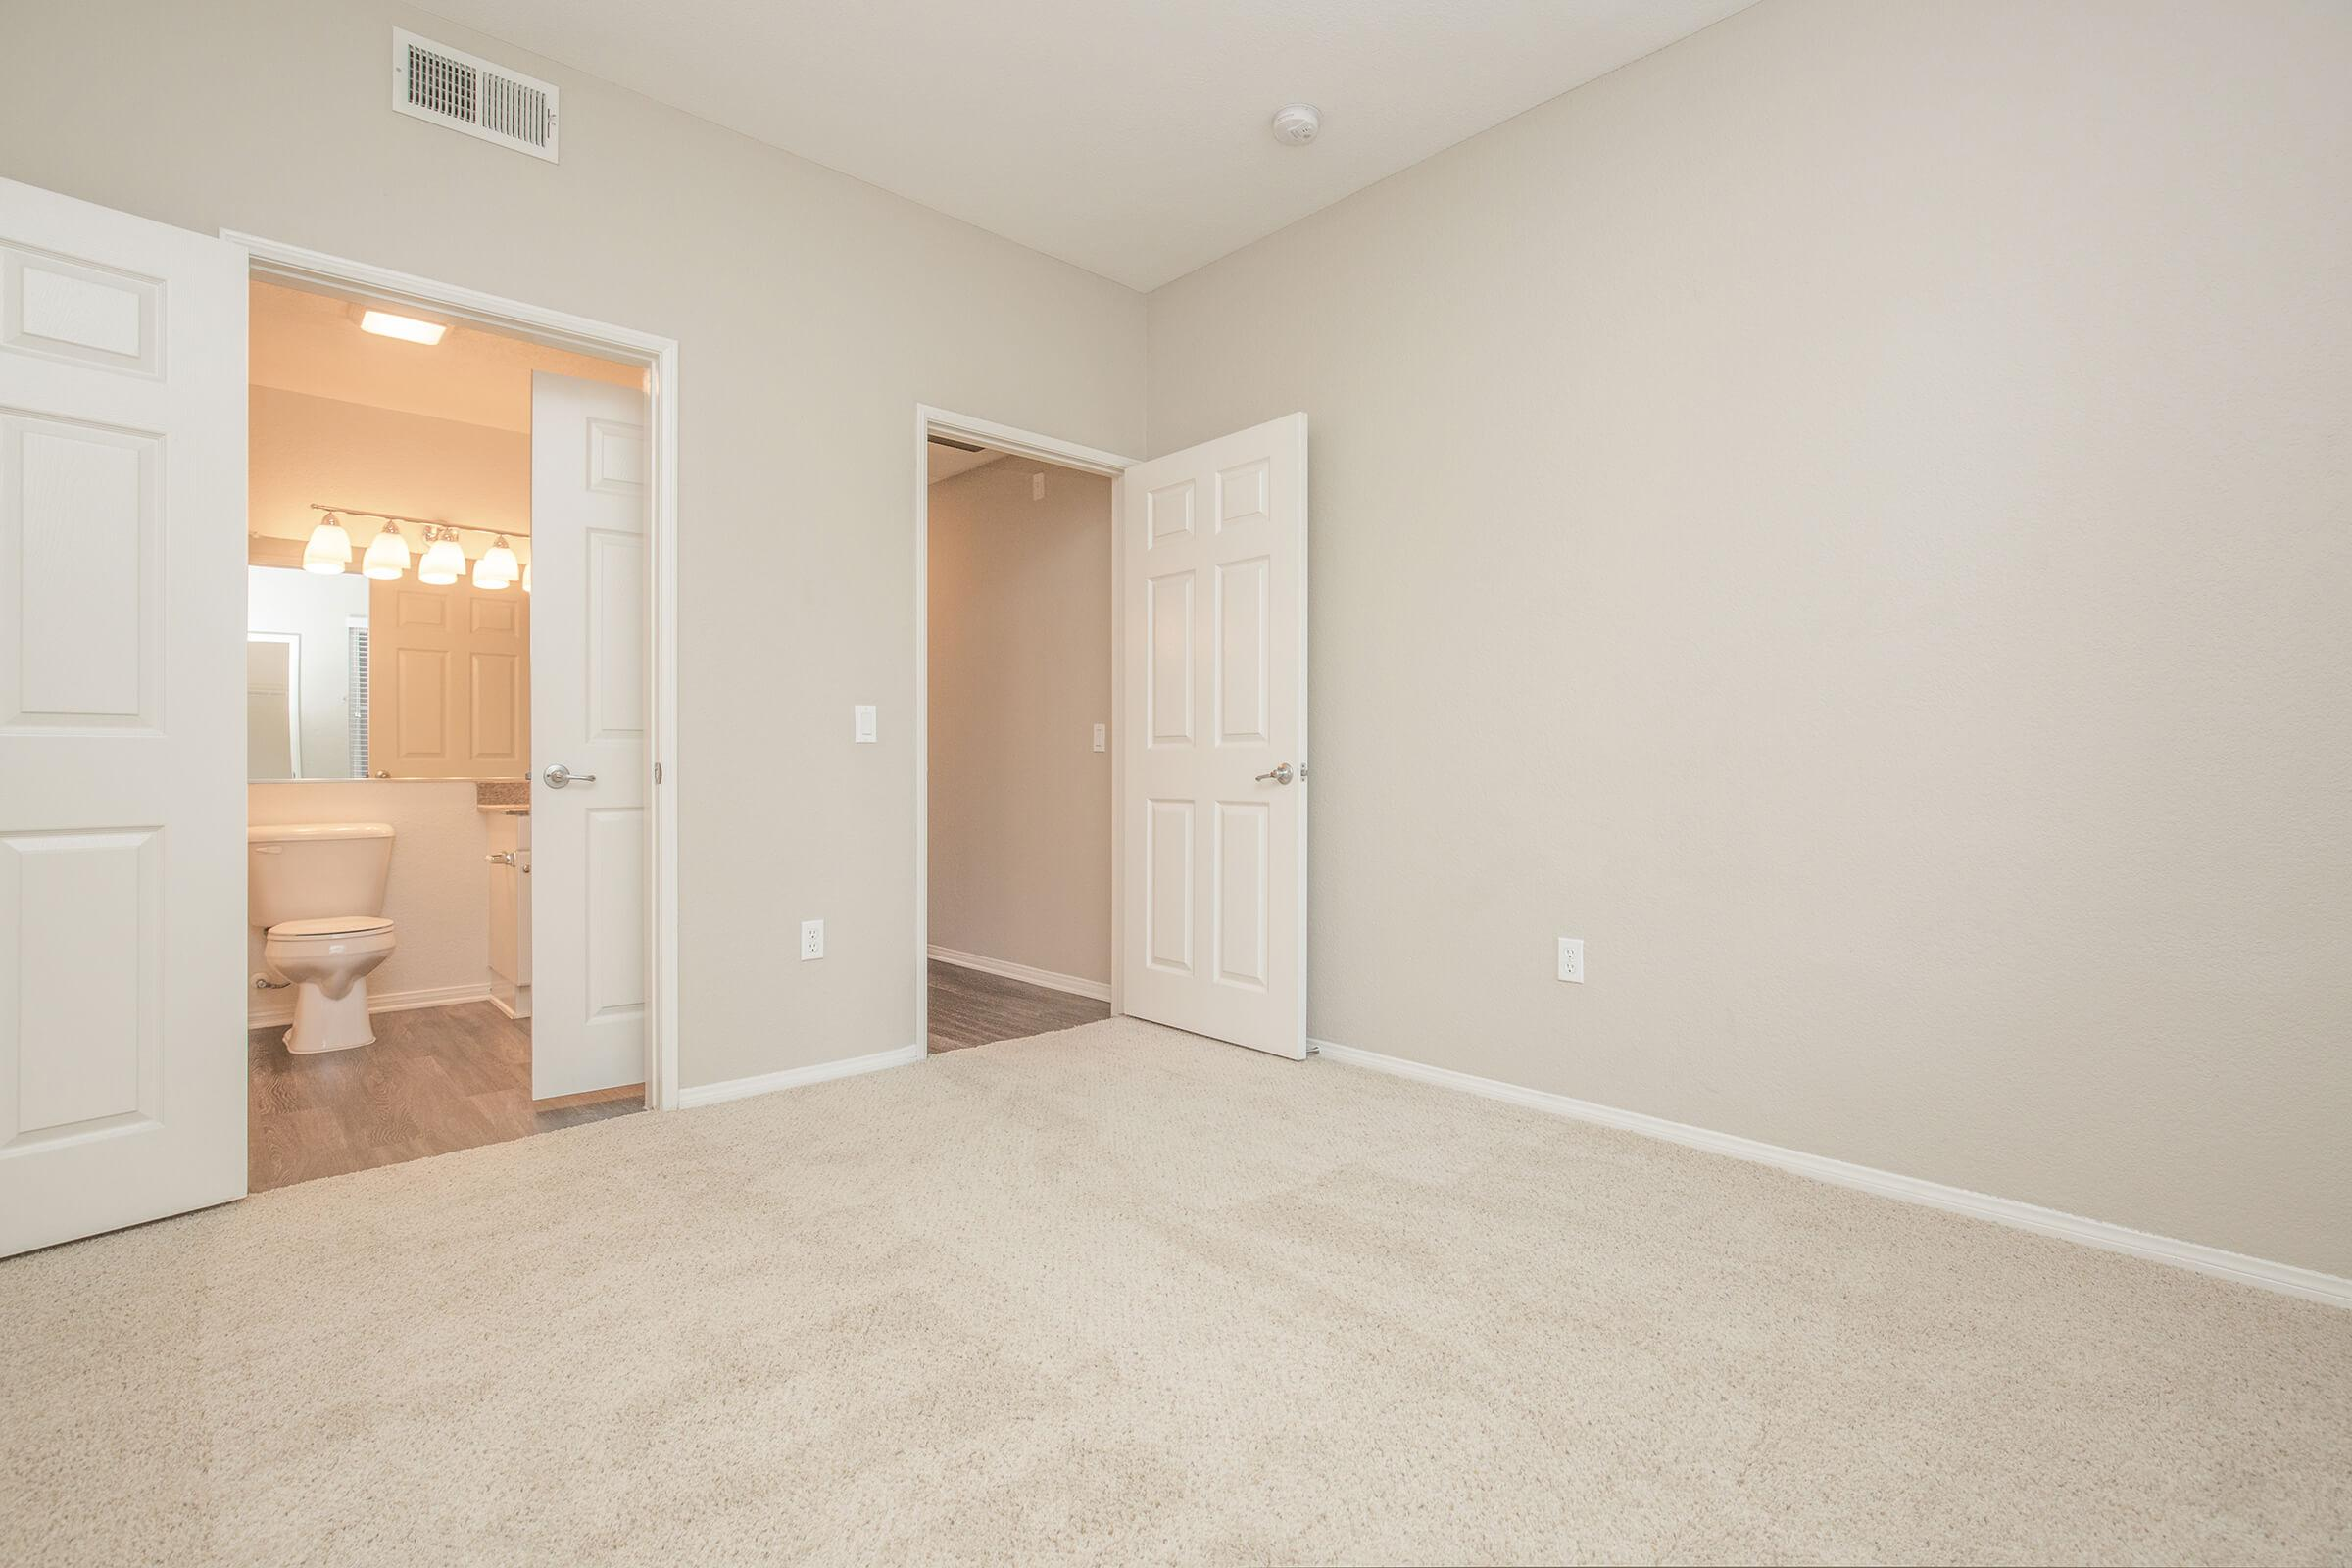 Carpeted bedroom with open bathroom and closet doors